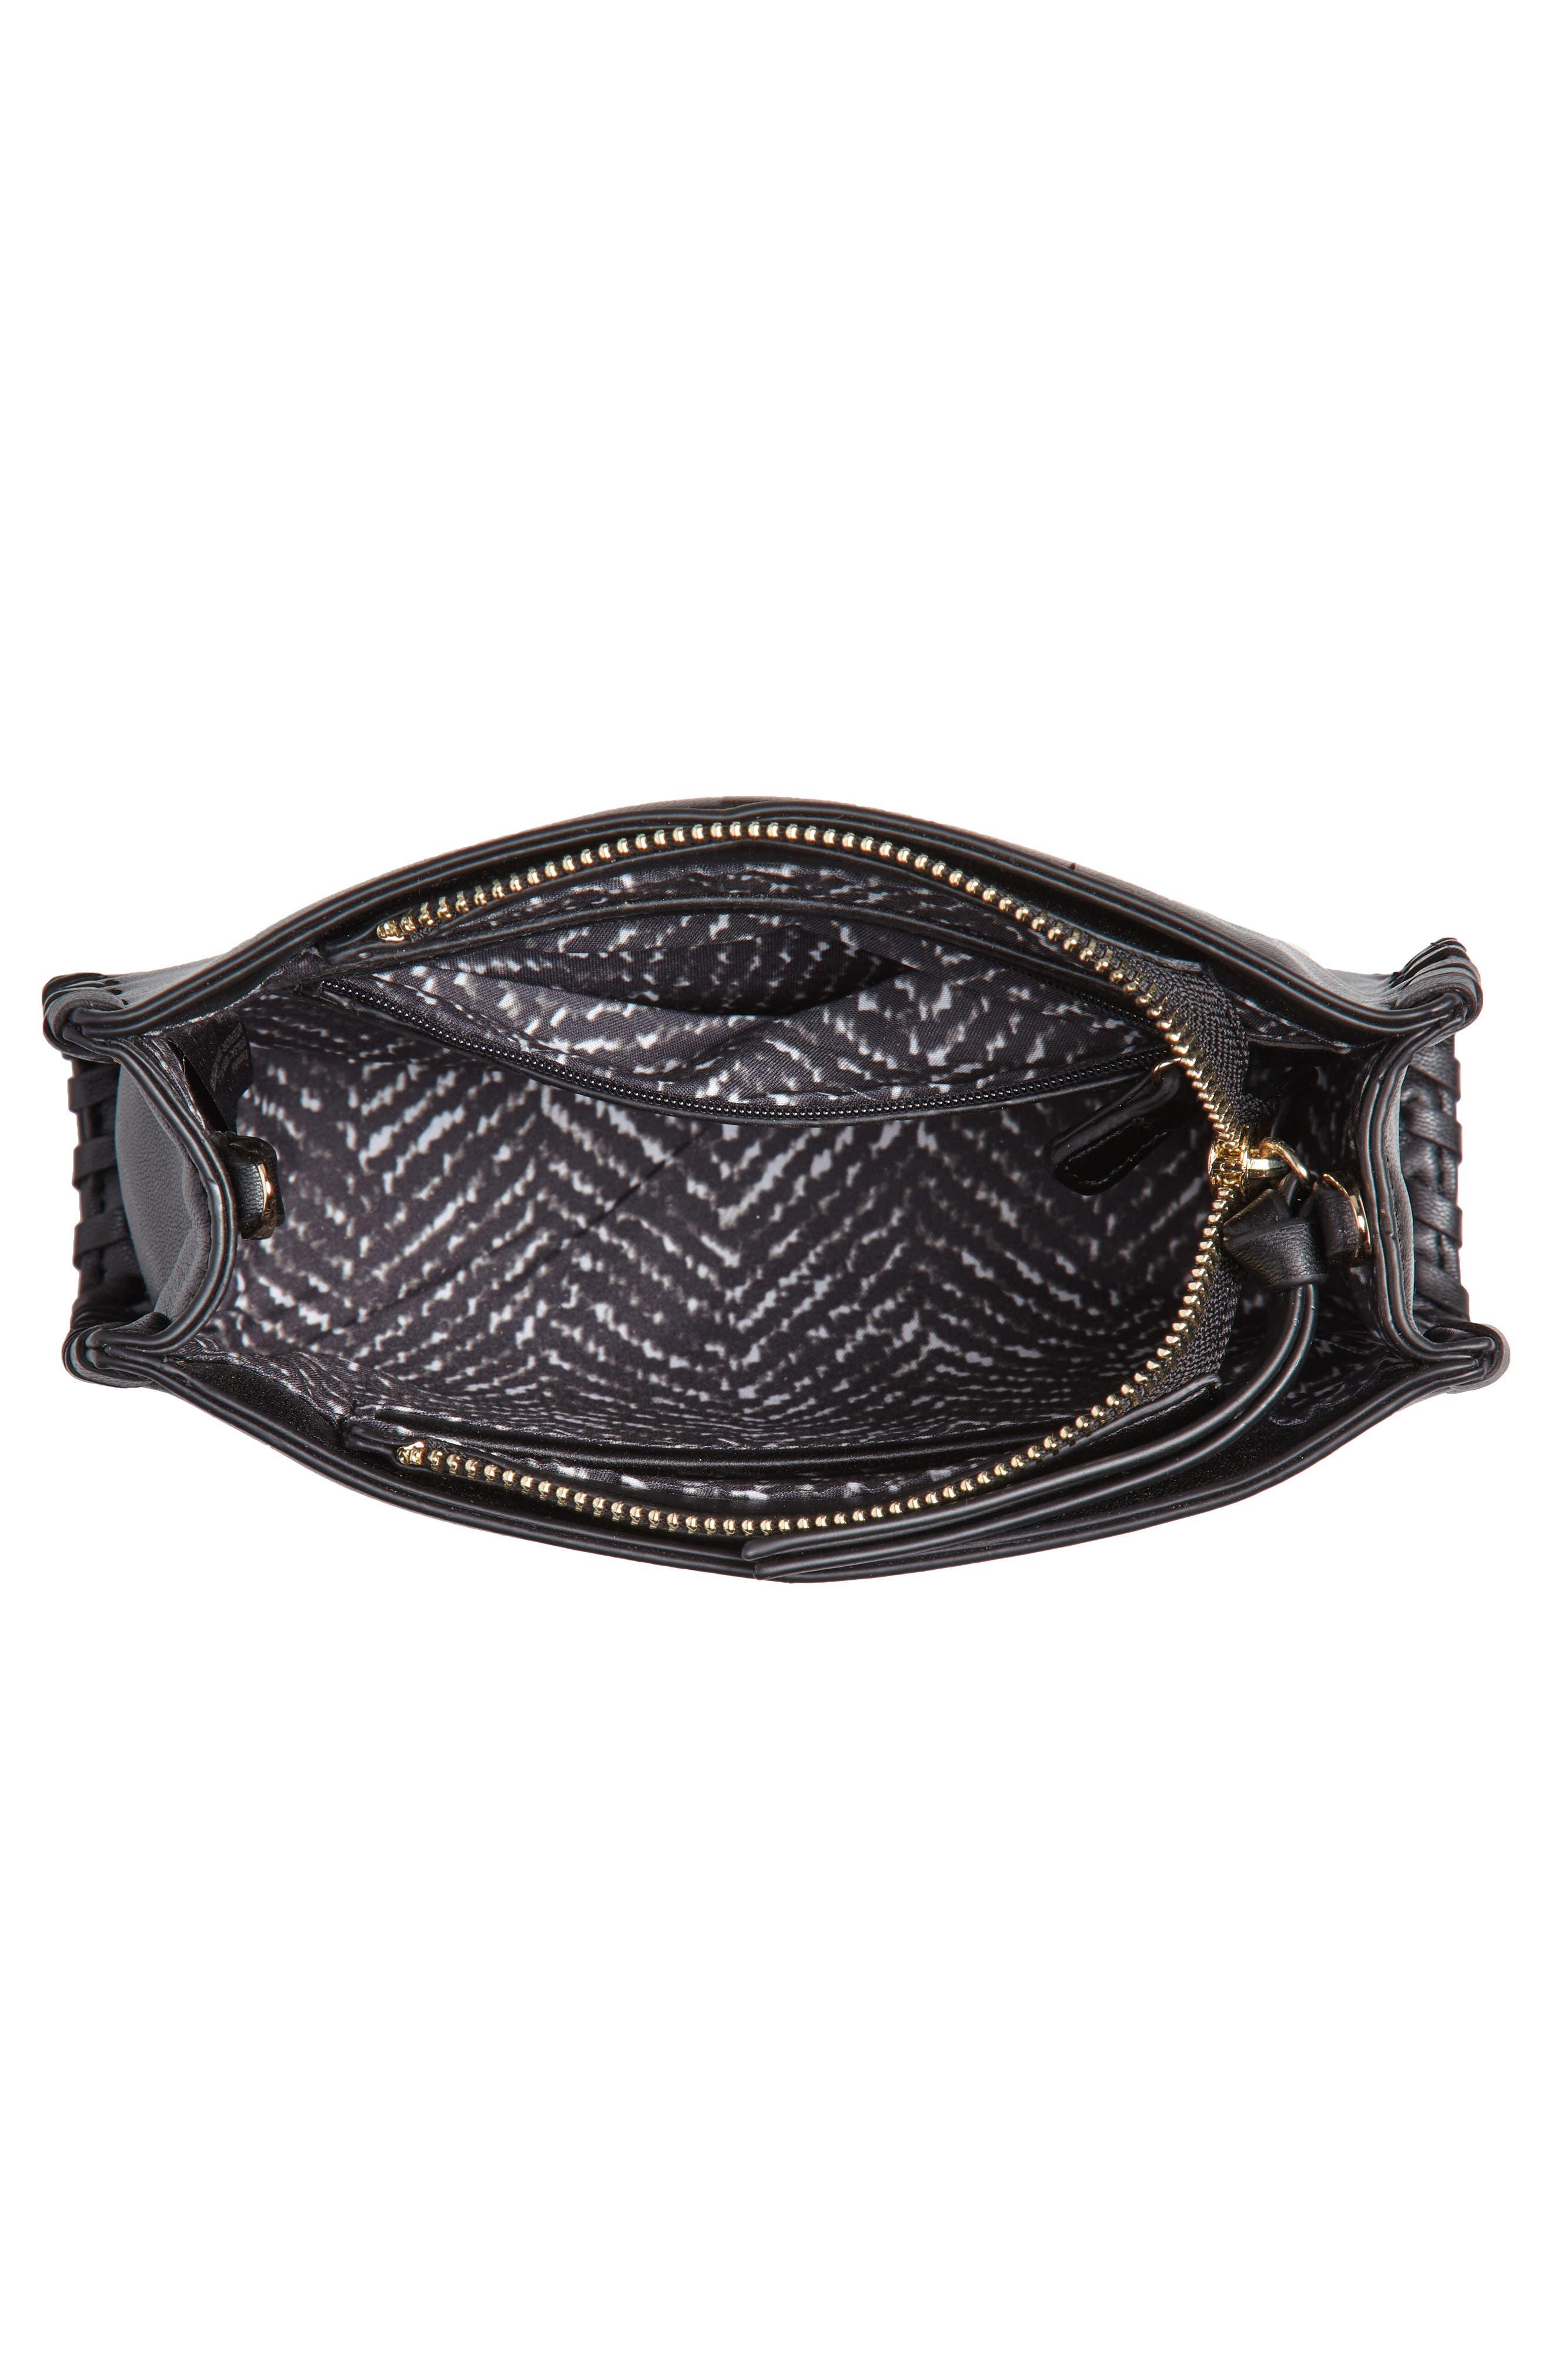 Cadence Whipstitch Faux Leather Crossbody Bag,                             Alternate thumbnail 4, color,                             Black